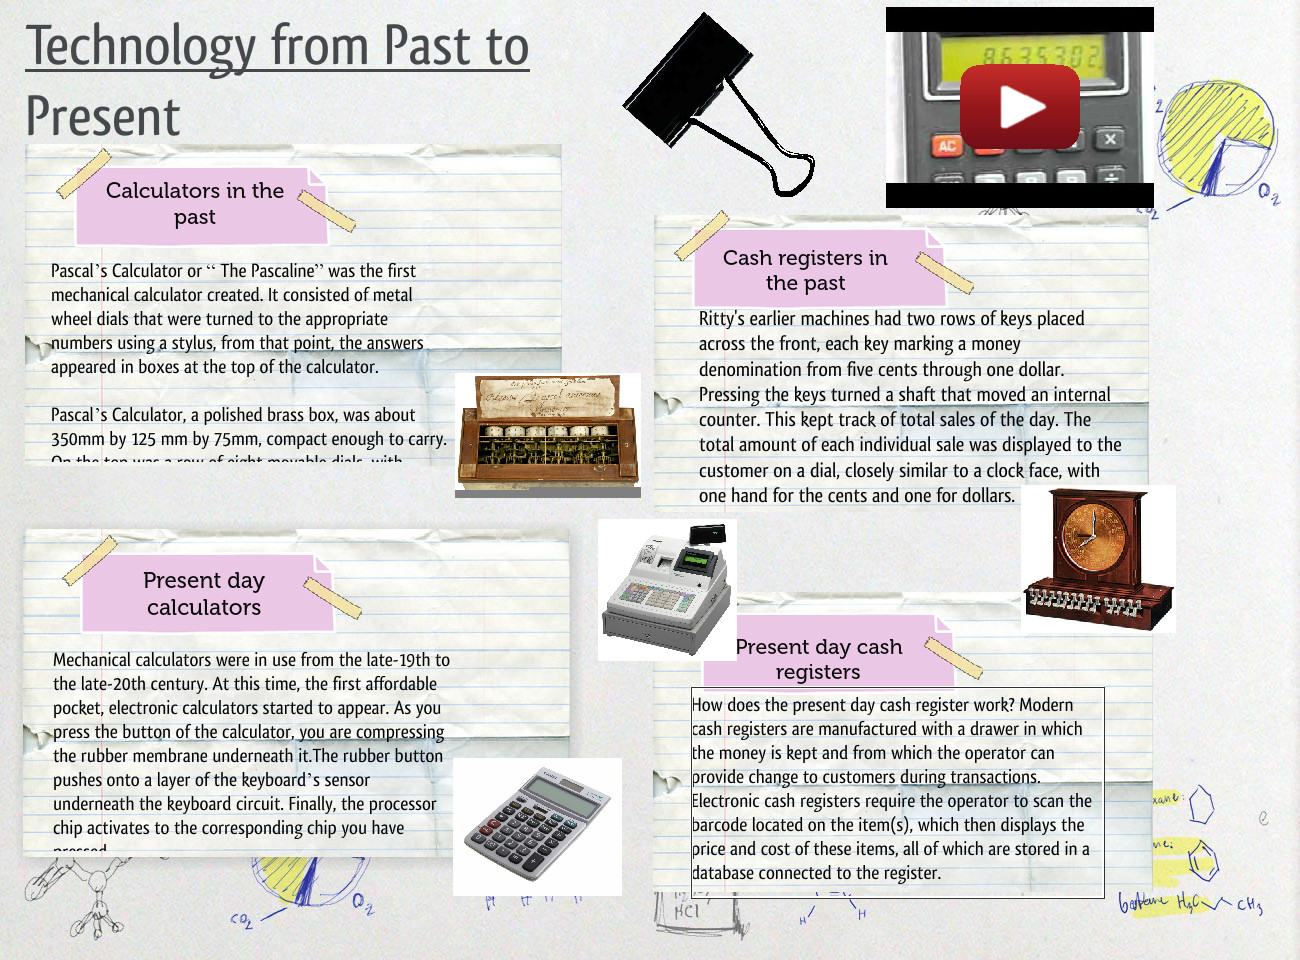 Technology from Past to Present